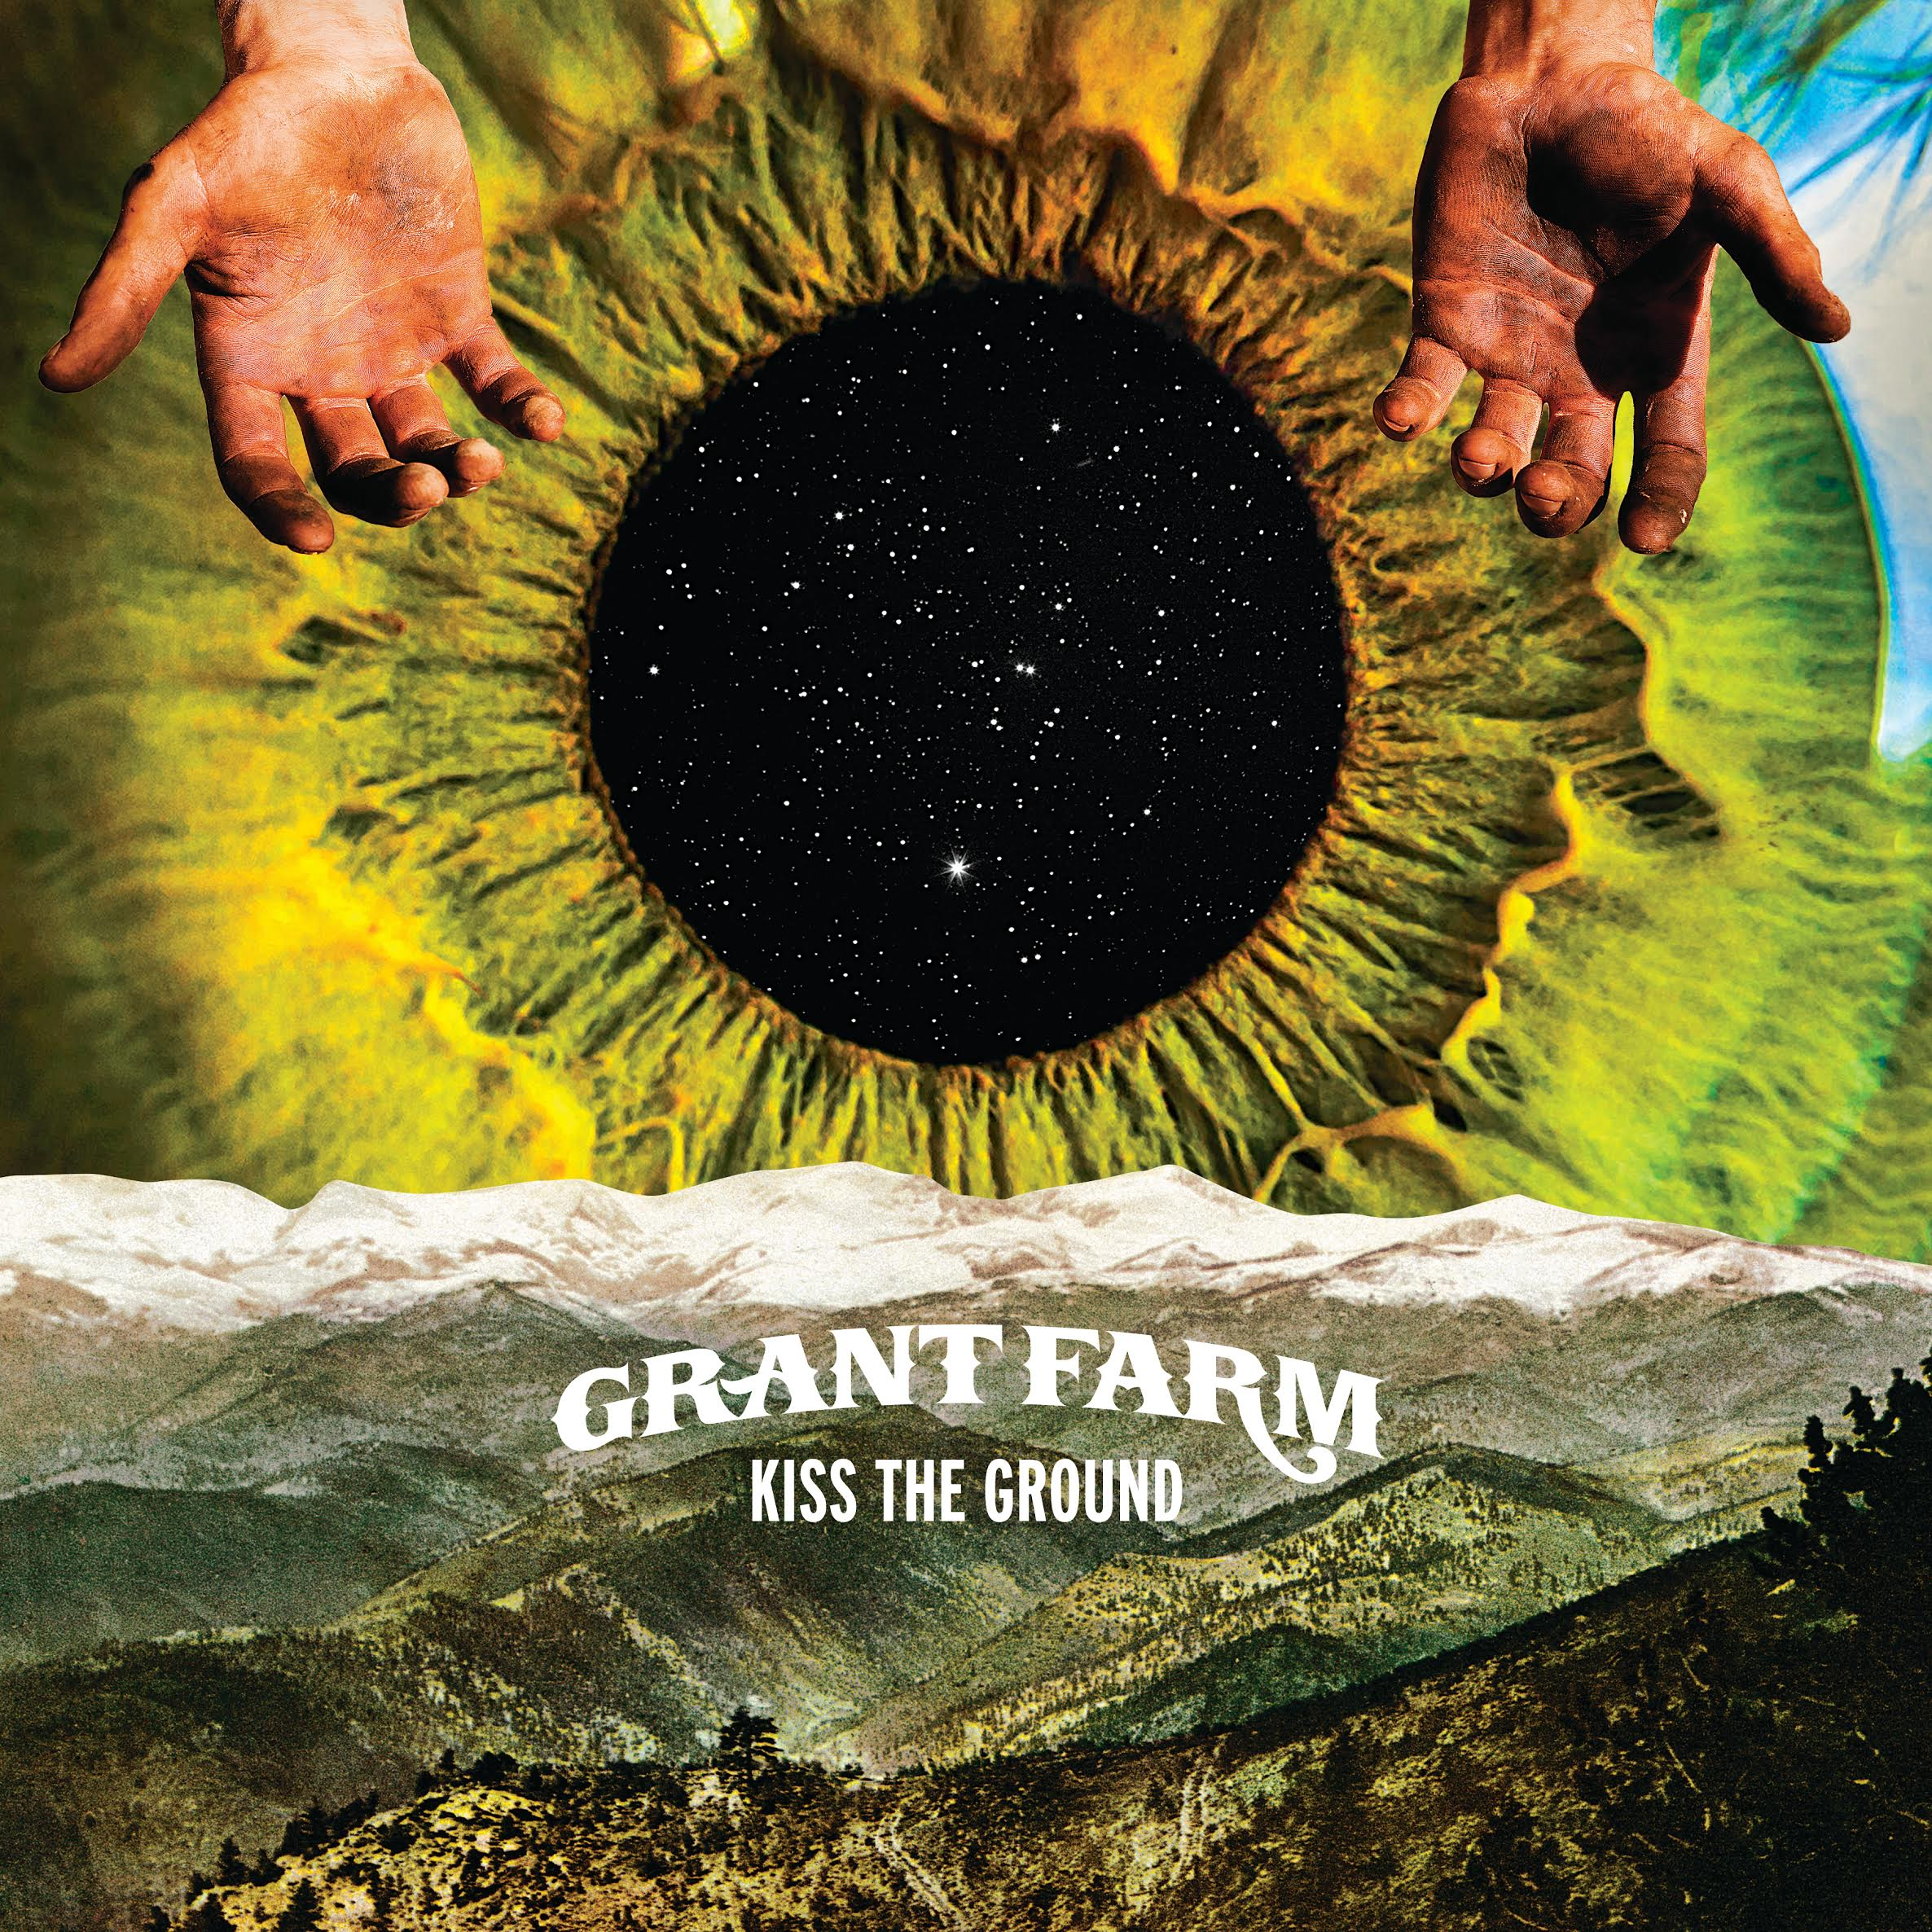 Grant Farm – Kiss the Ground